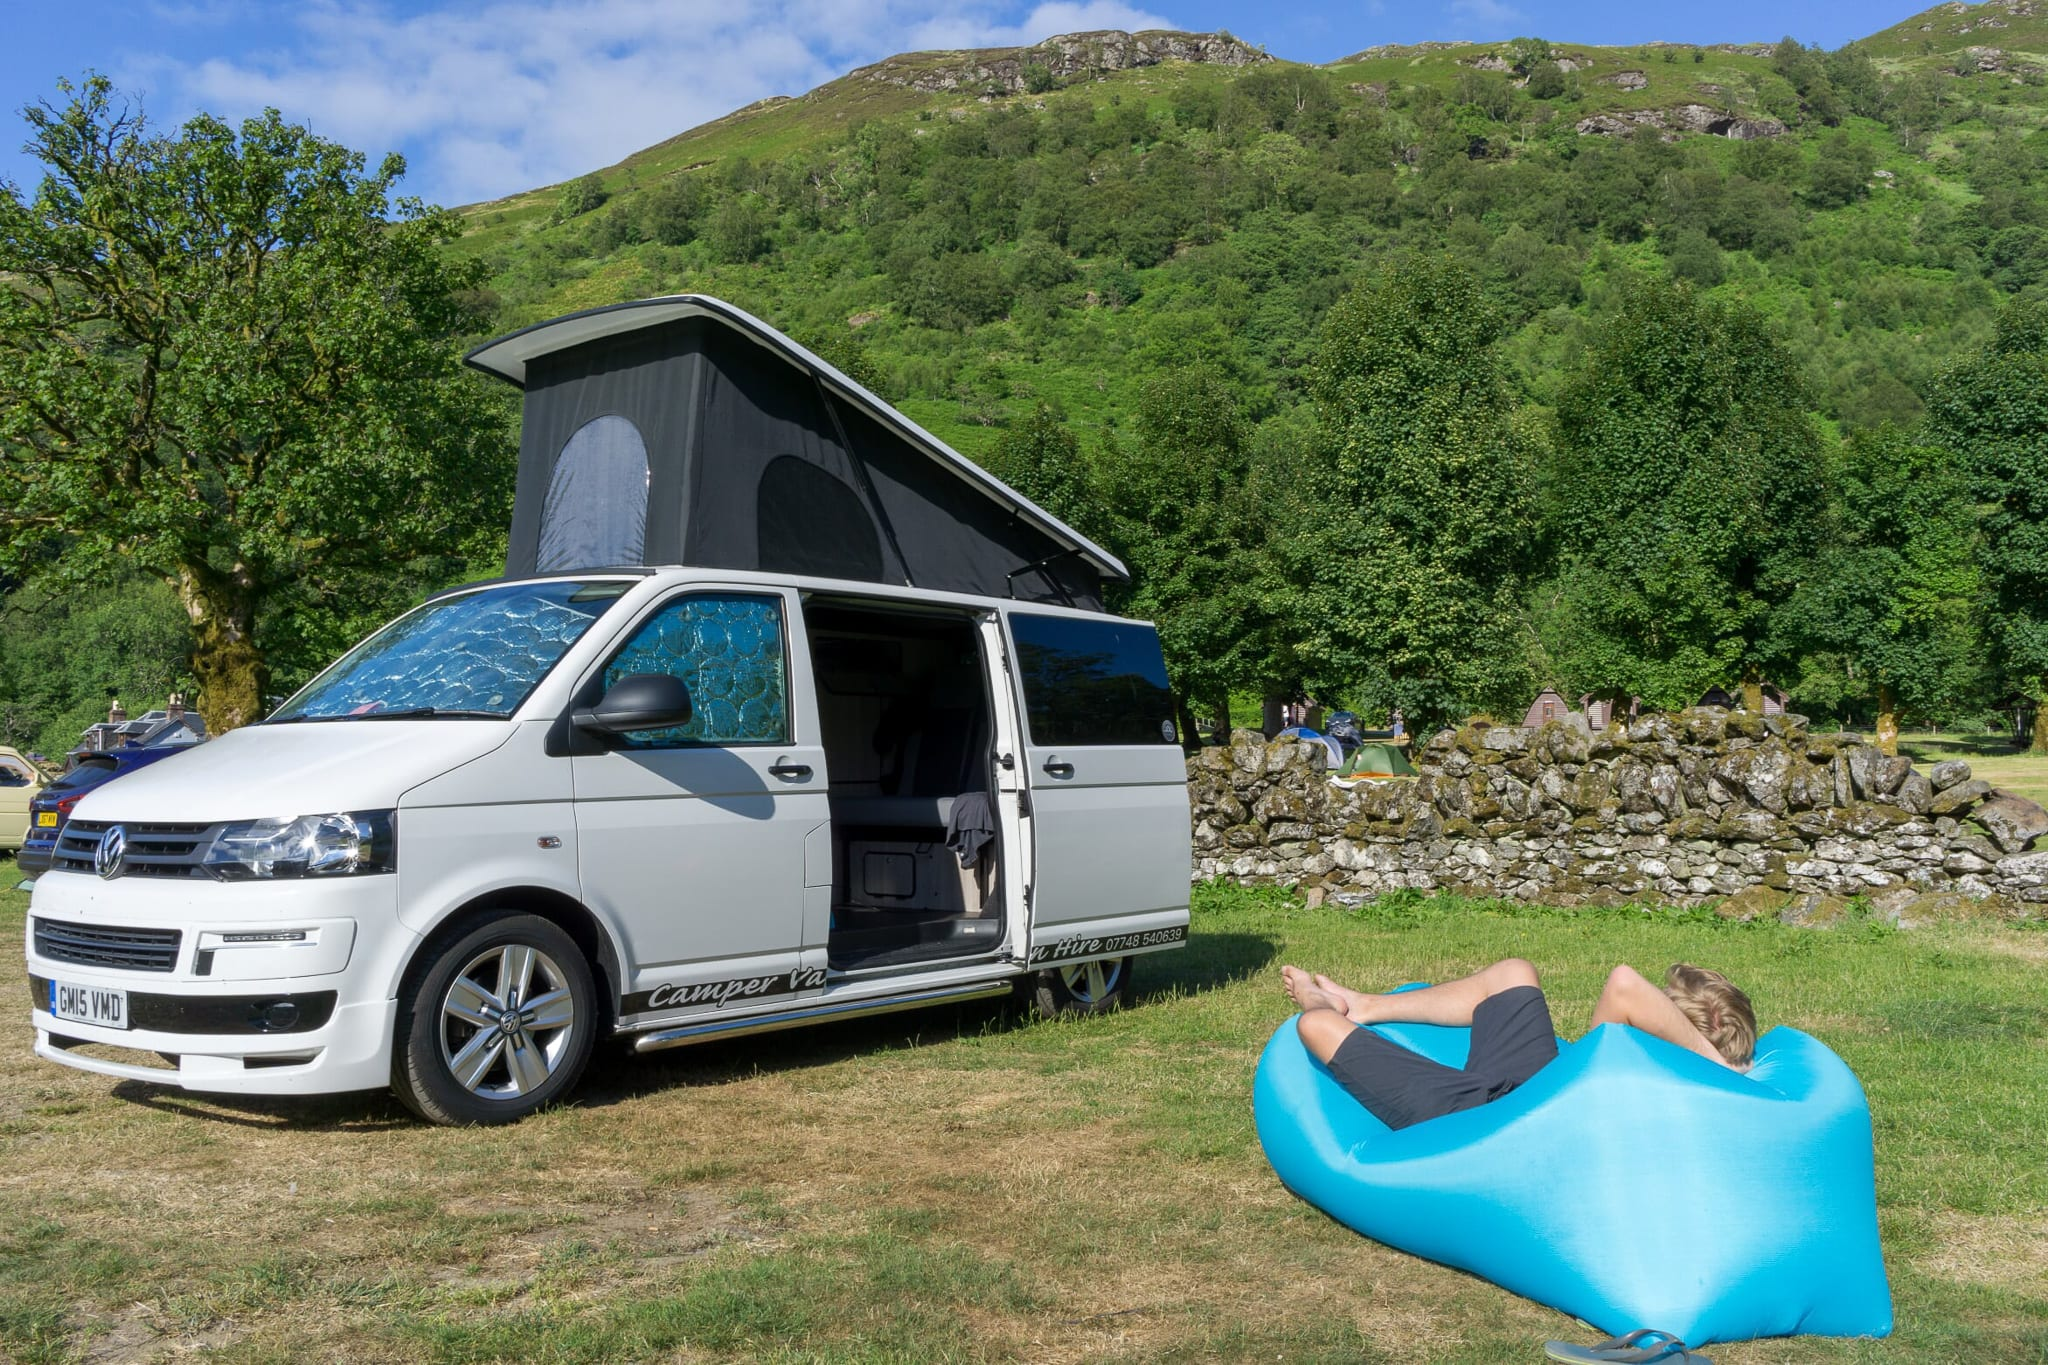 Relaxing on a camping site in a Camper Van